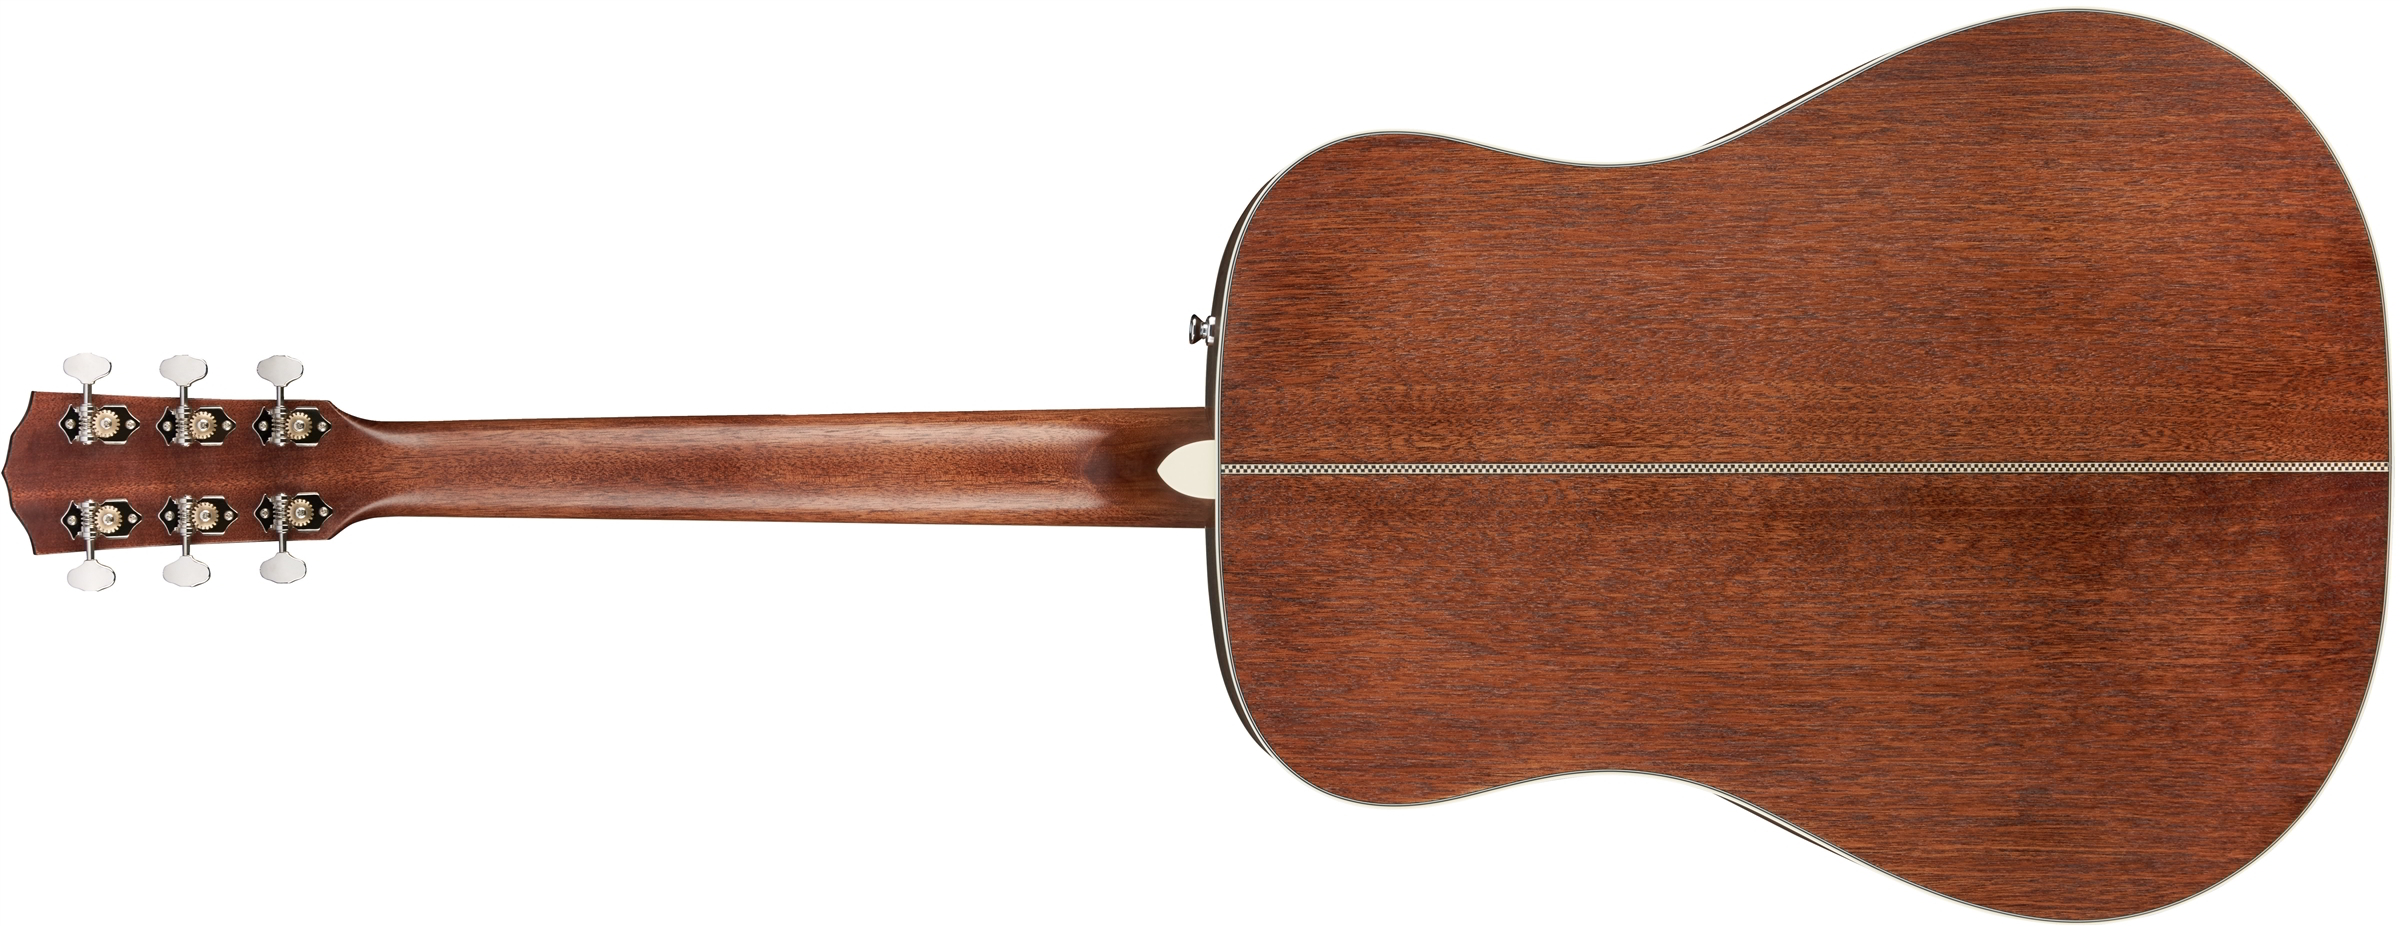 PM-1 Standard Dreadnought All-Mahogany NE背面画像